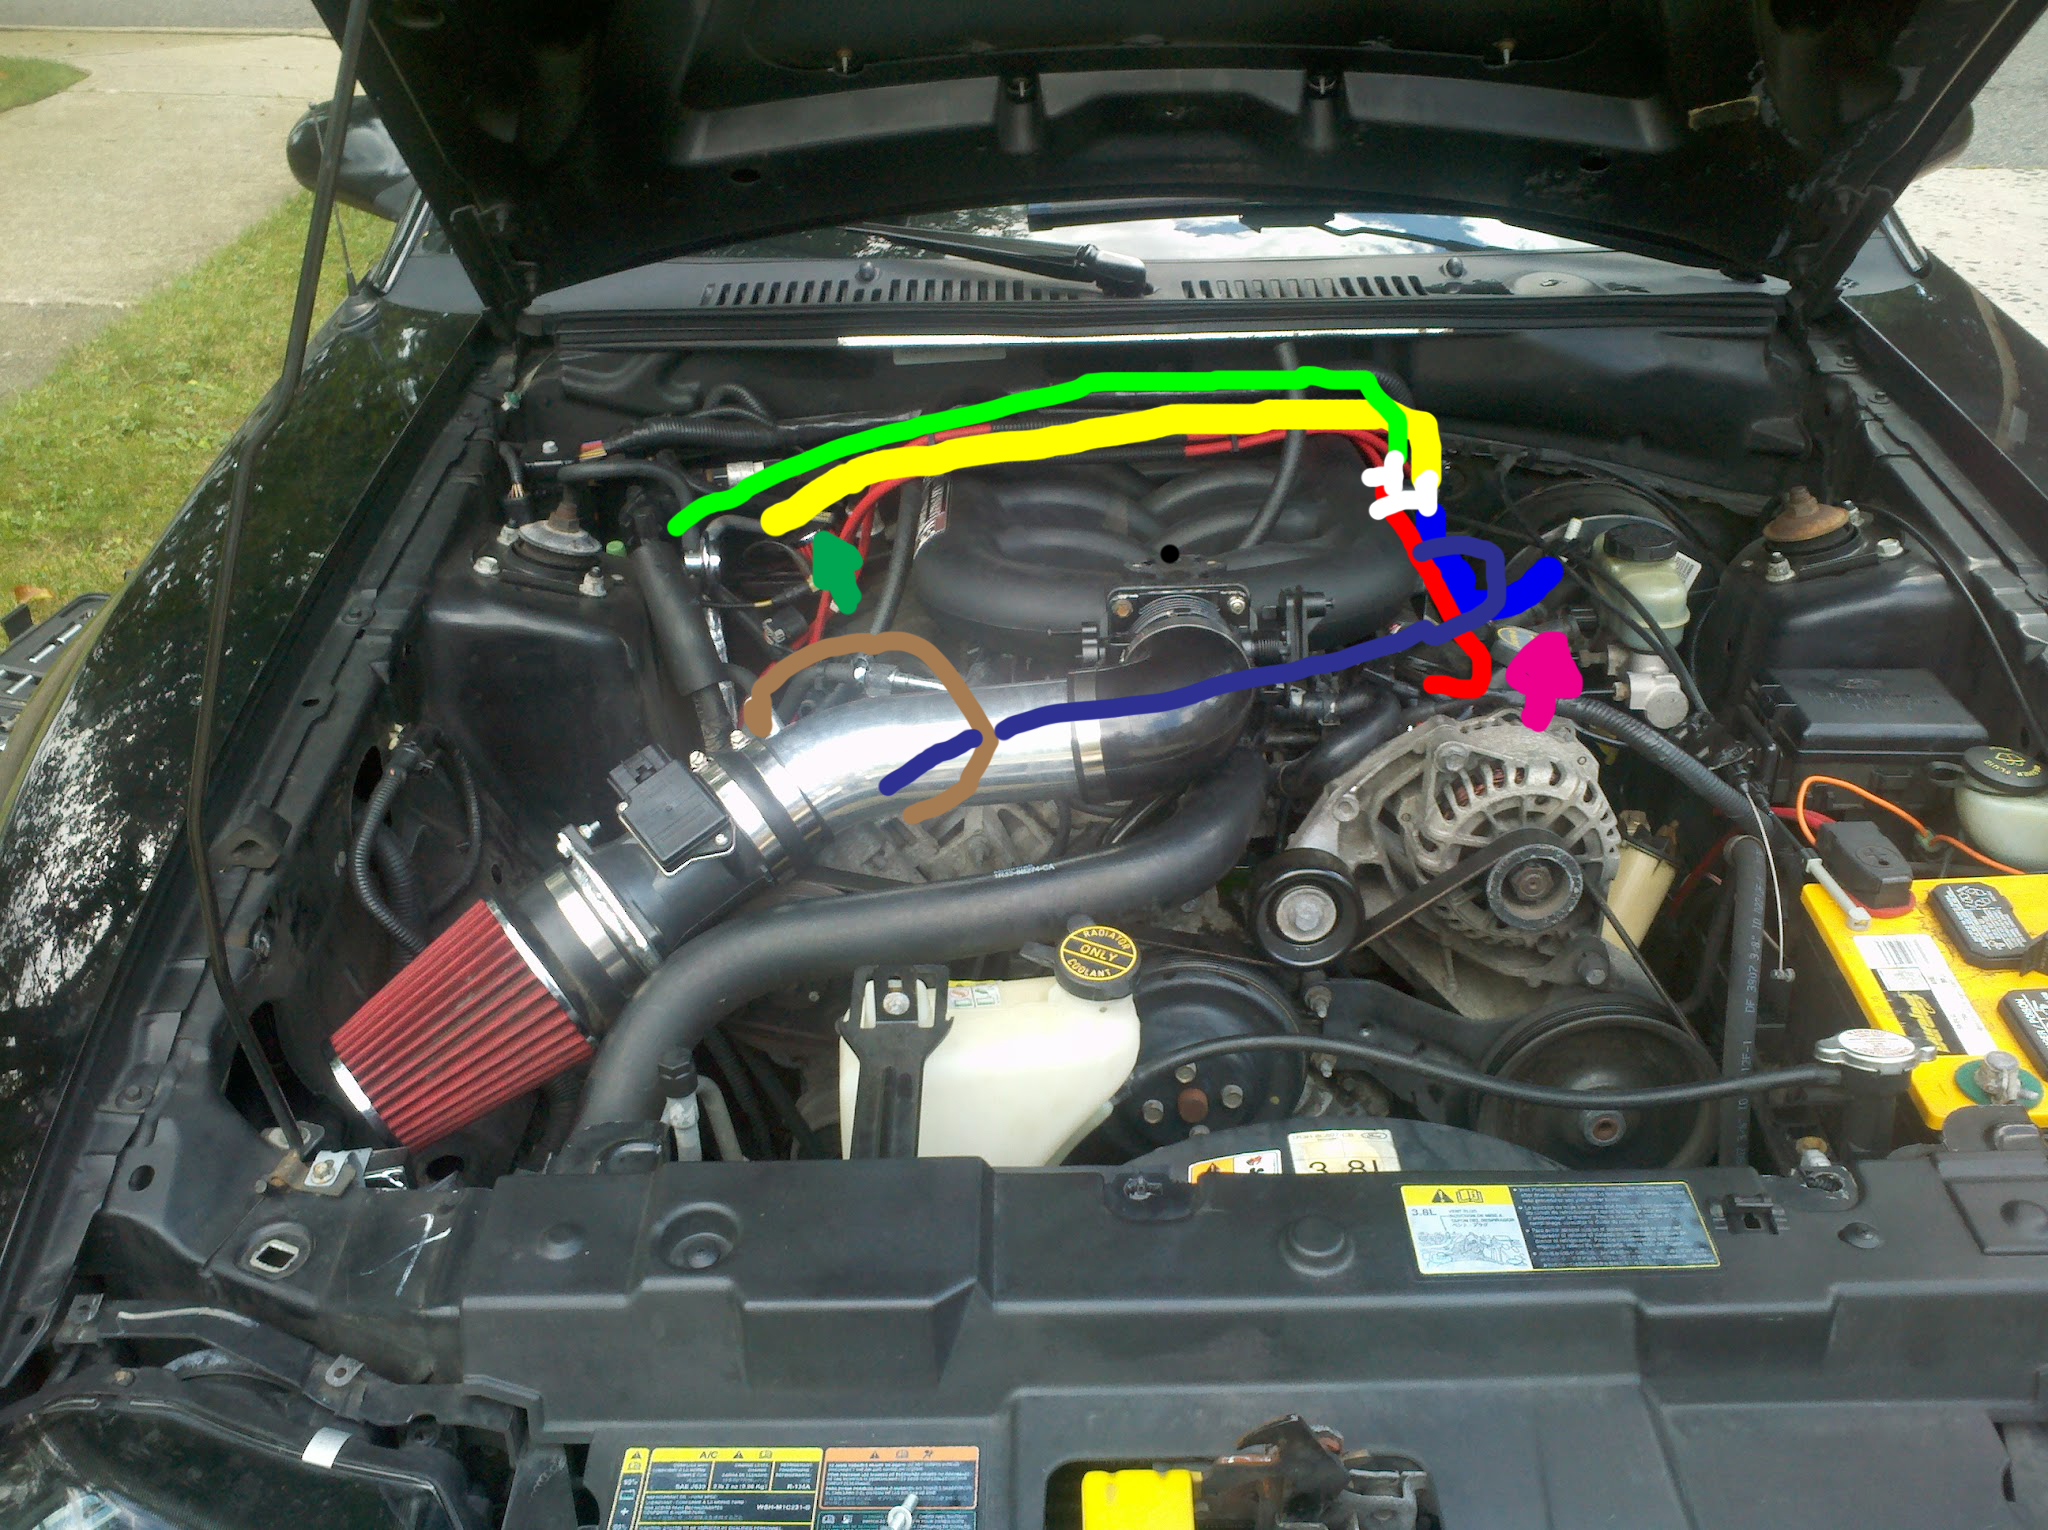 1998 Ford Windstar Engine Vacuum Diagram Trusted Wiring Diagrams 3 8 Liter 2000 Electricity 1999 Expedition 54